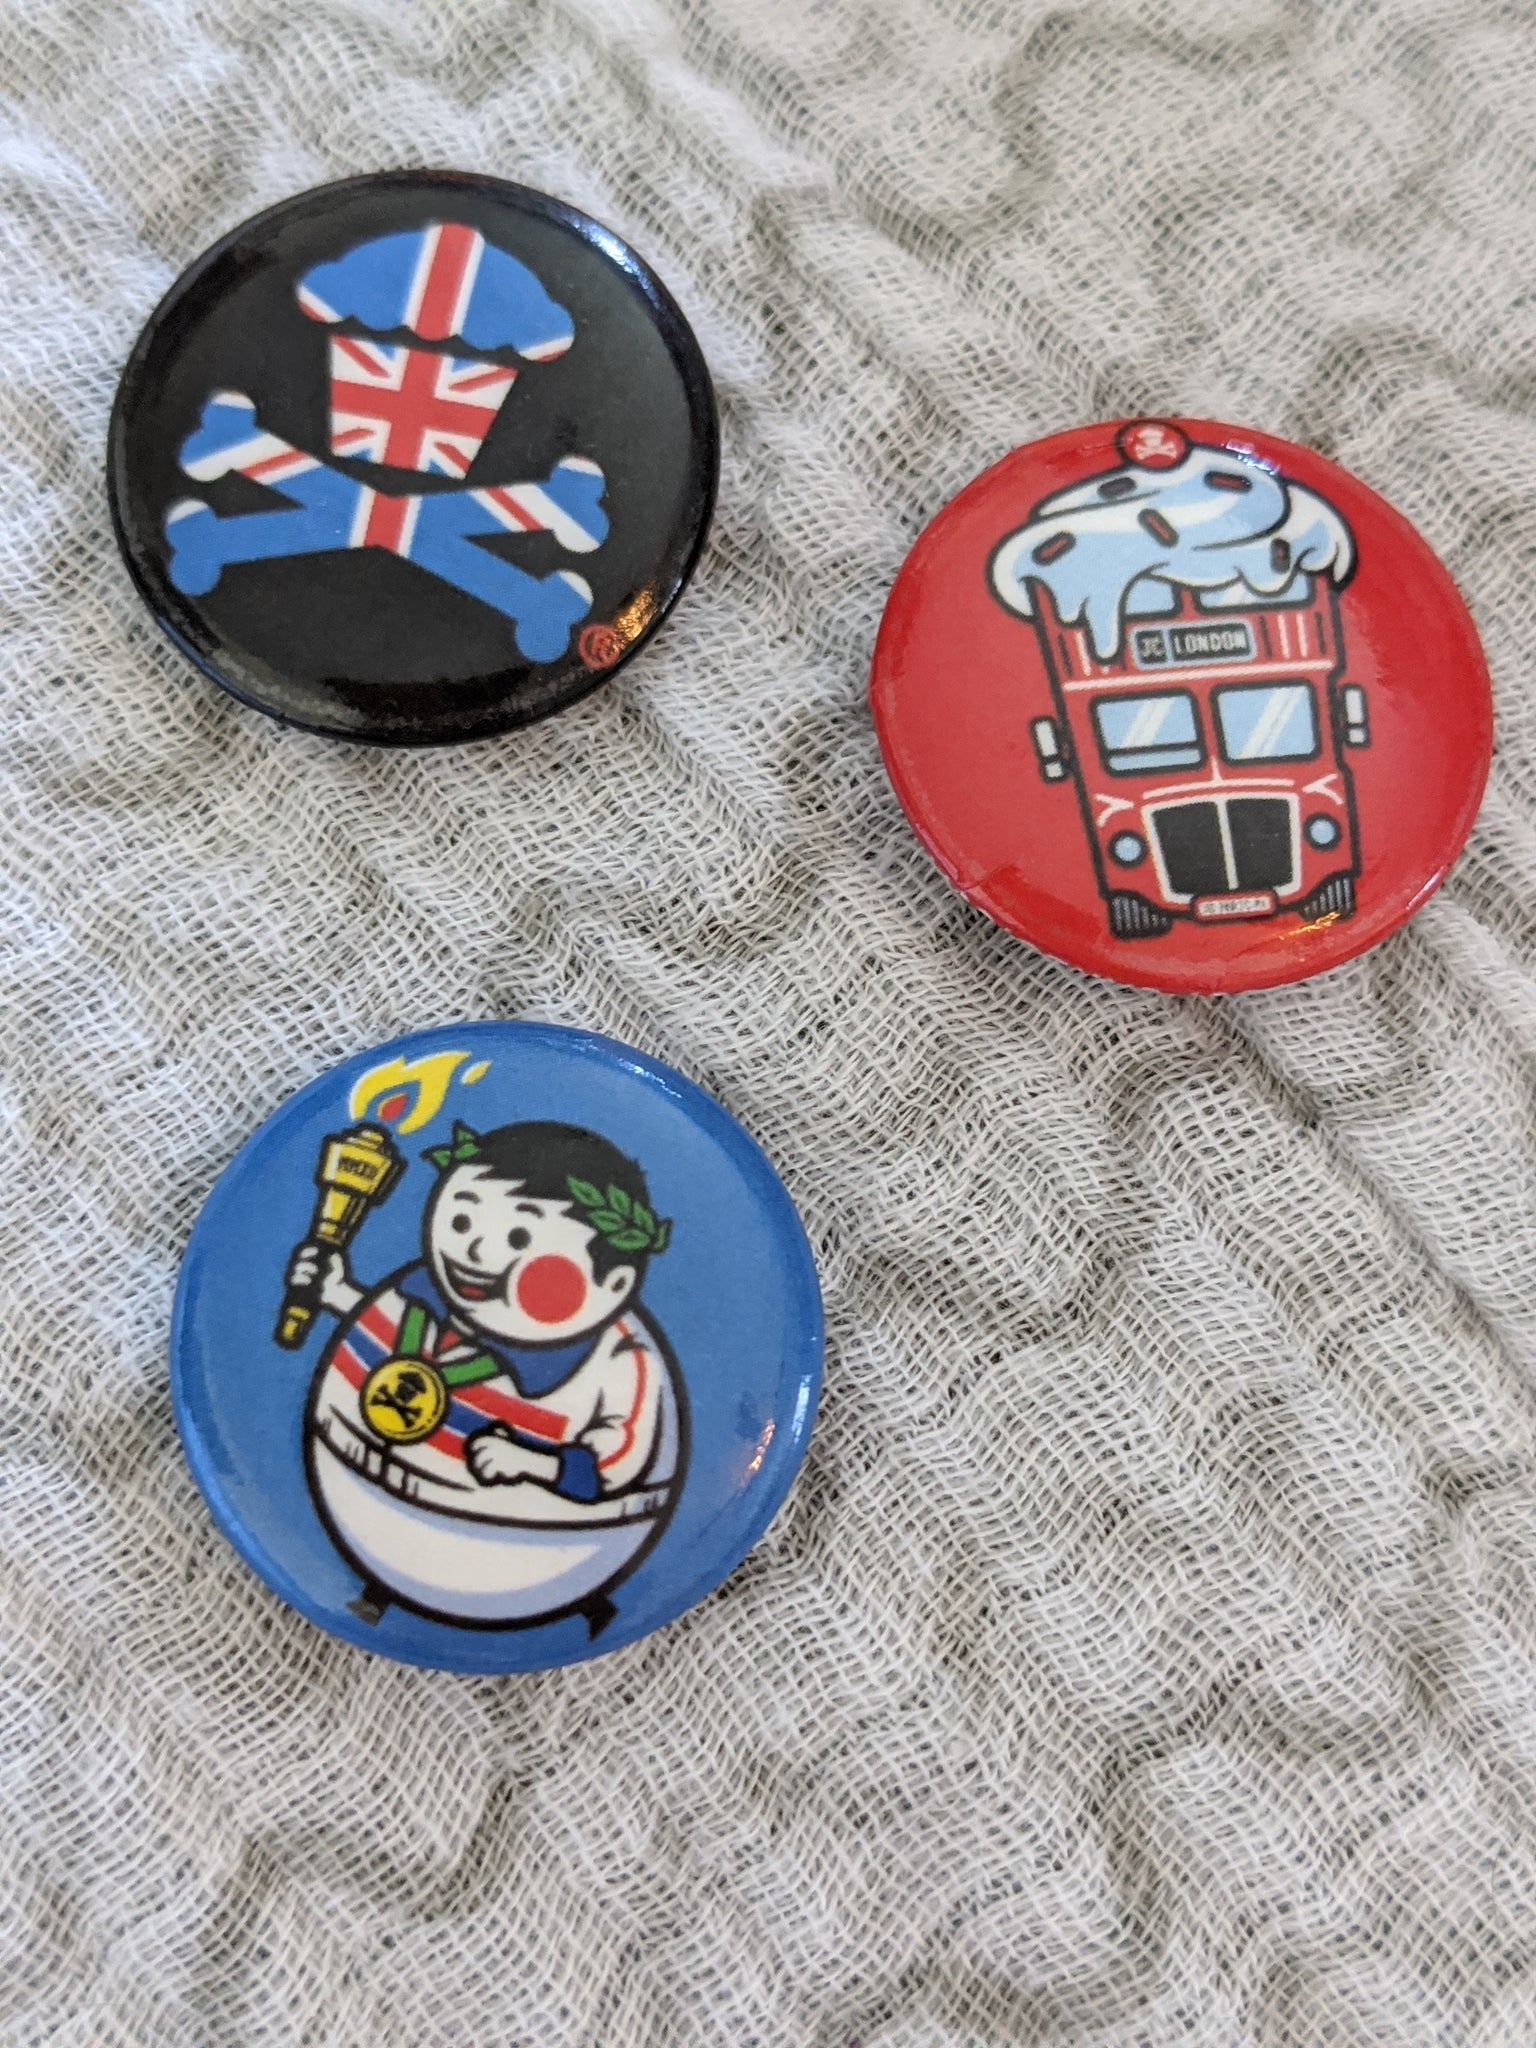 Johnny Cupcakes London Buttons Pins Collection (3)